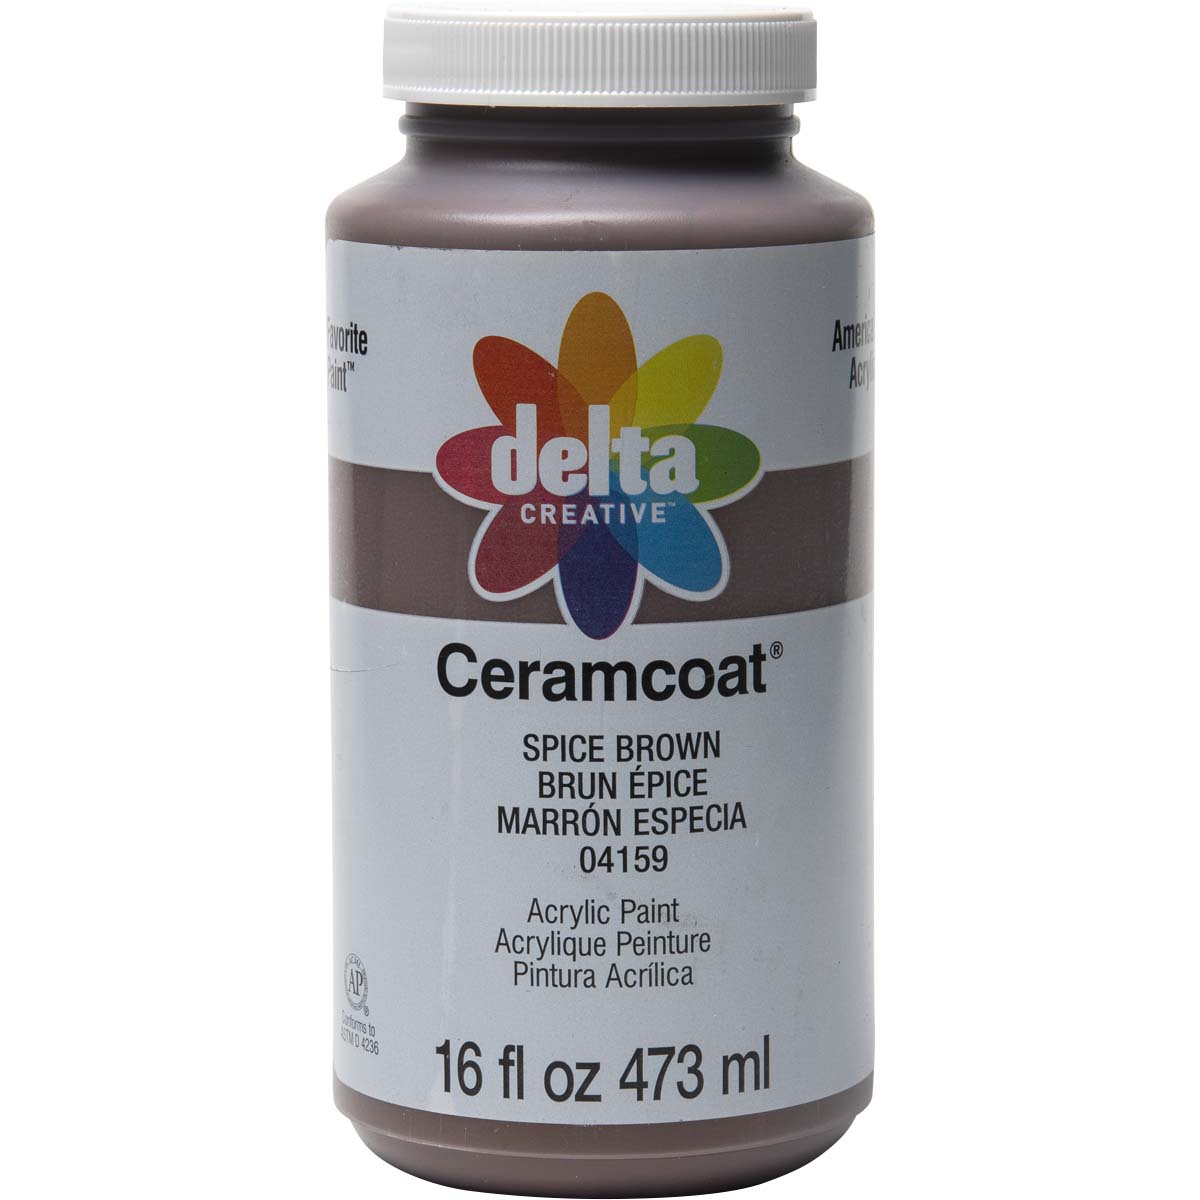 Delta Ceramcoat ® Acrylic Paint - Spice Brown, 16 oz. - 04159